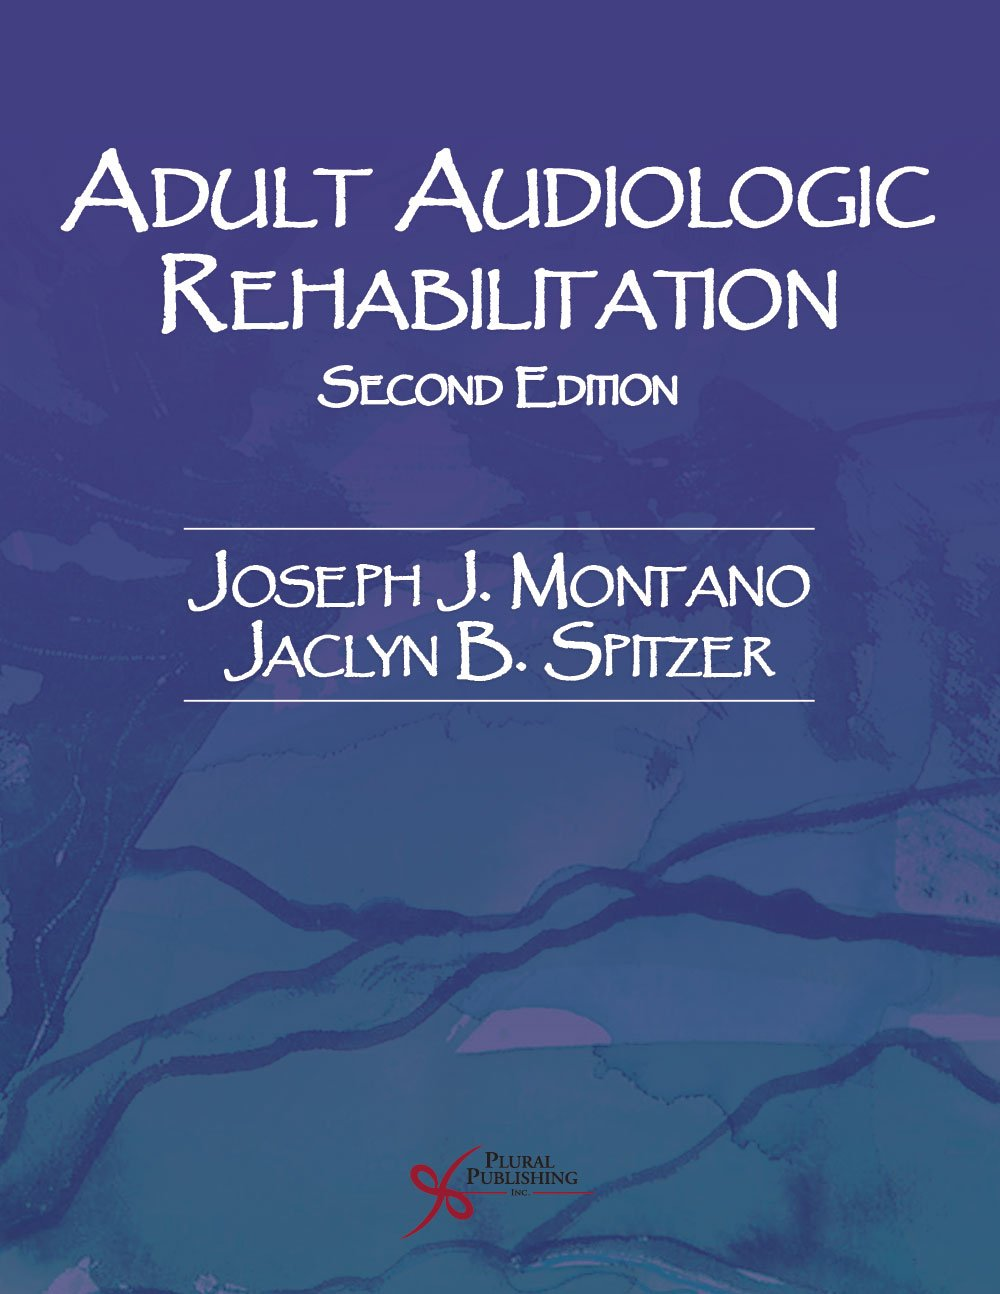 Adult Audiologic Rehabilitation, Second Edition (Audiology)